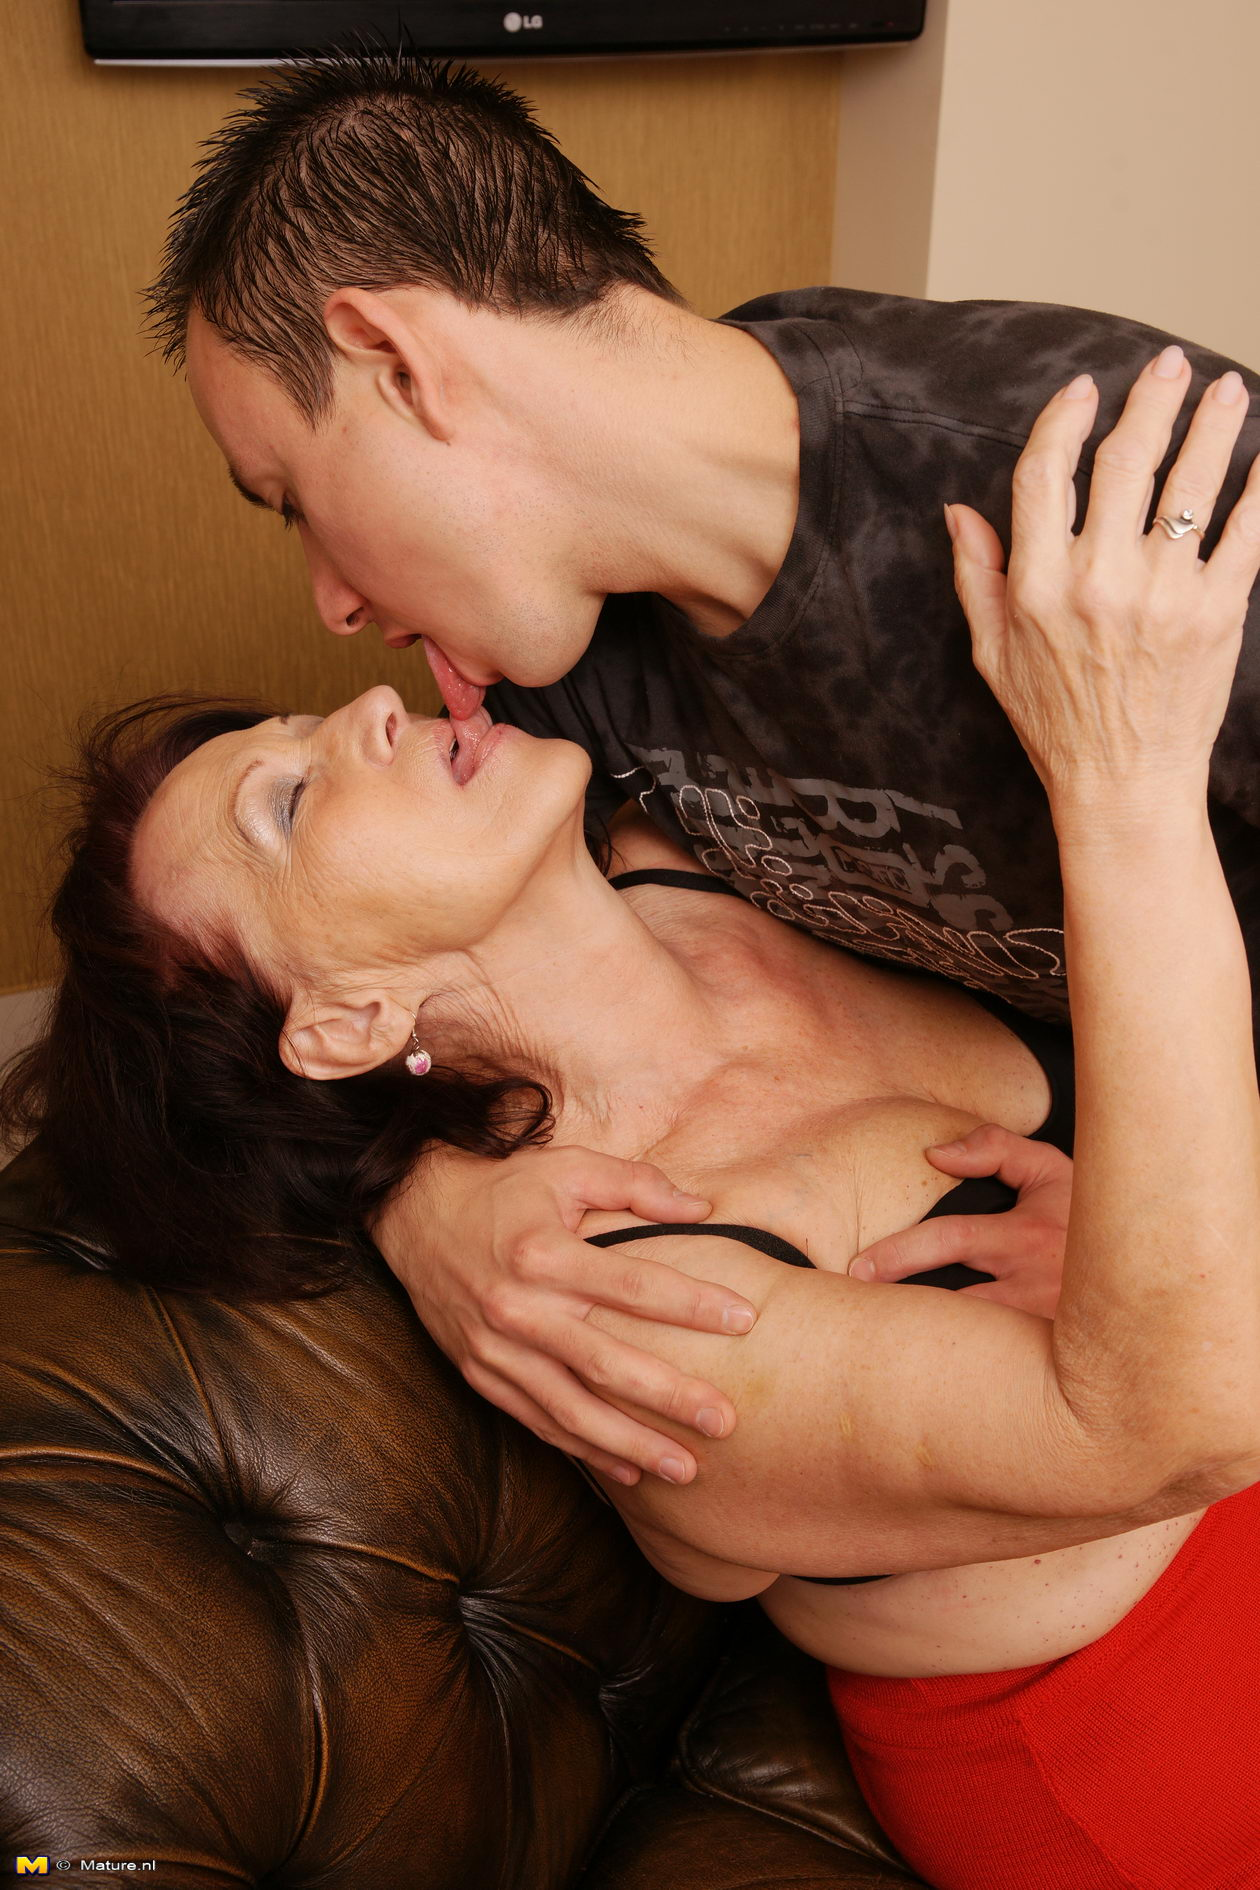 Free milf with boy video